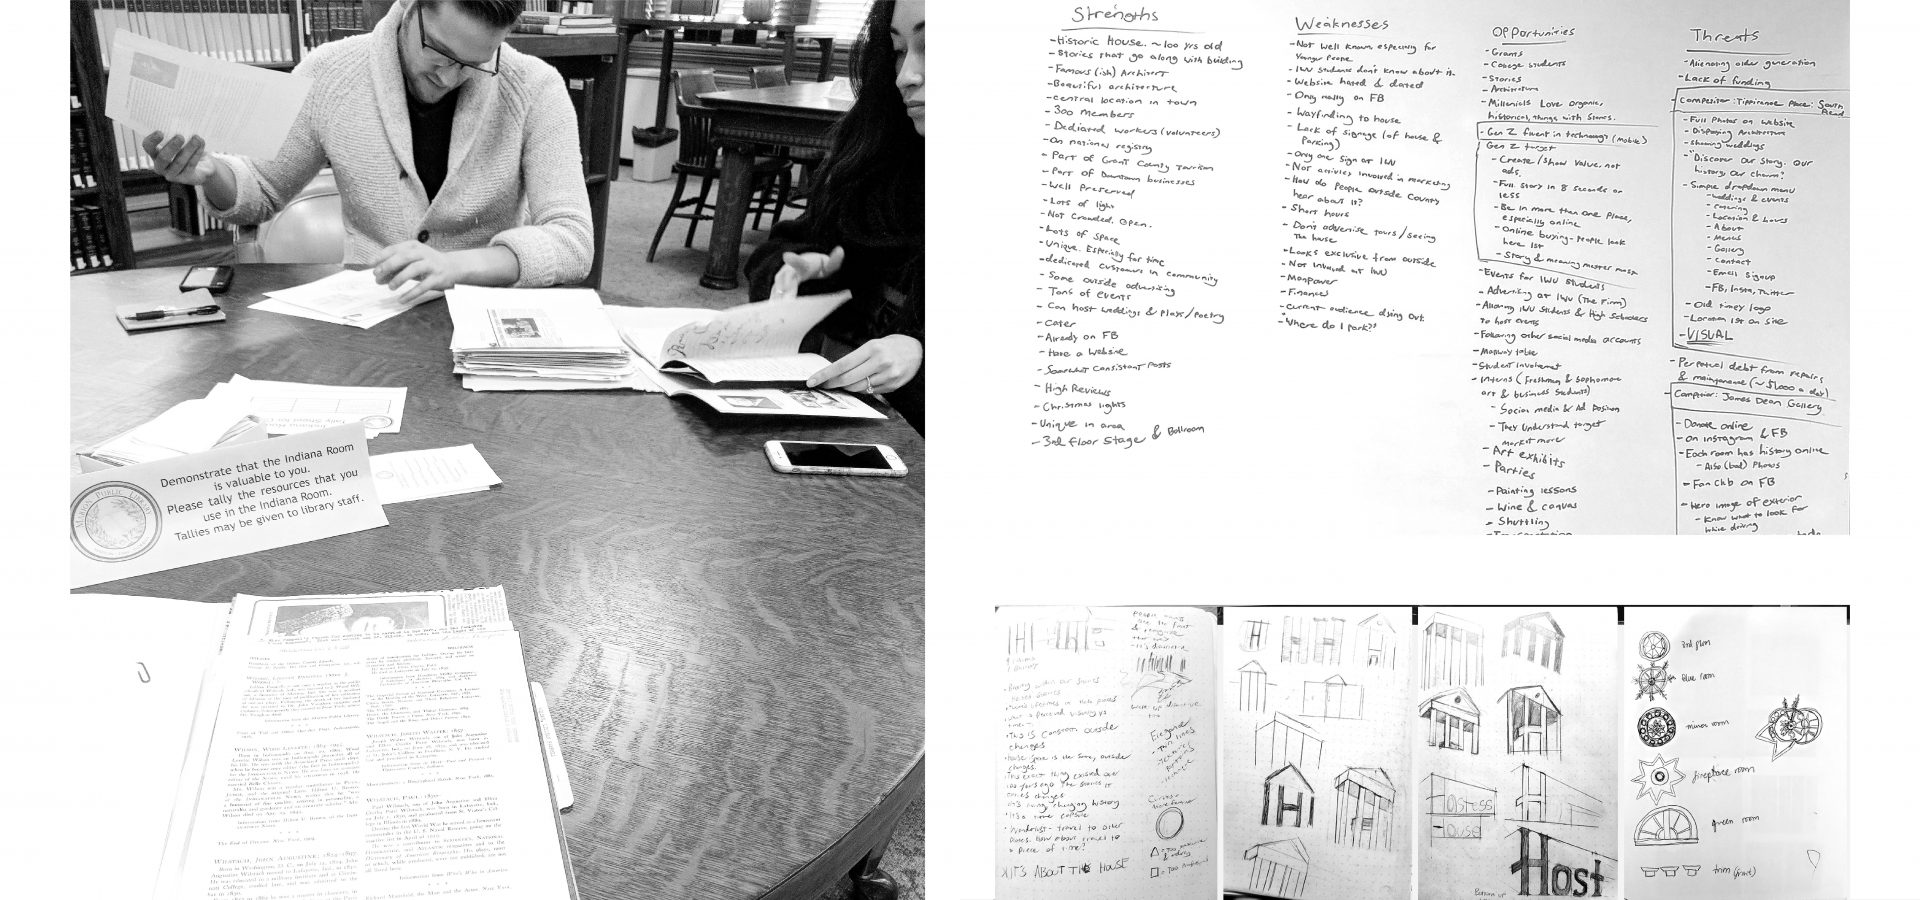 Images from the design process for Hostess house. Tim W. Swanson and design team on left, with with SWOT analysis and logo sketches on right.